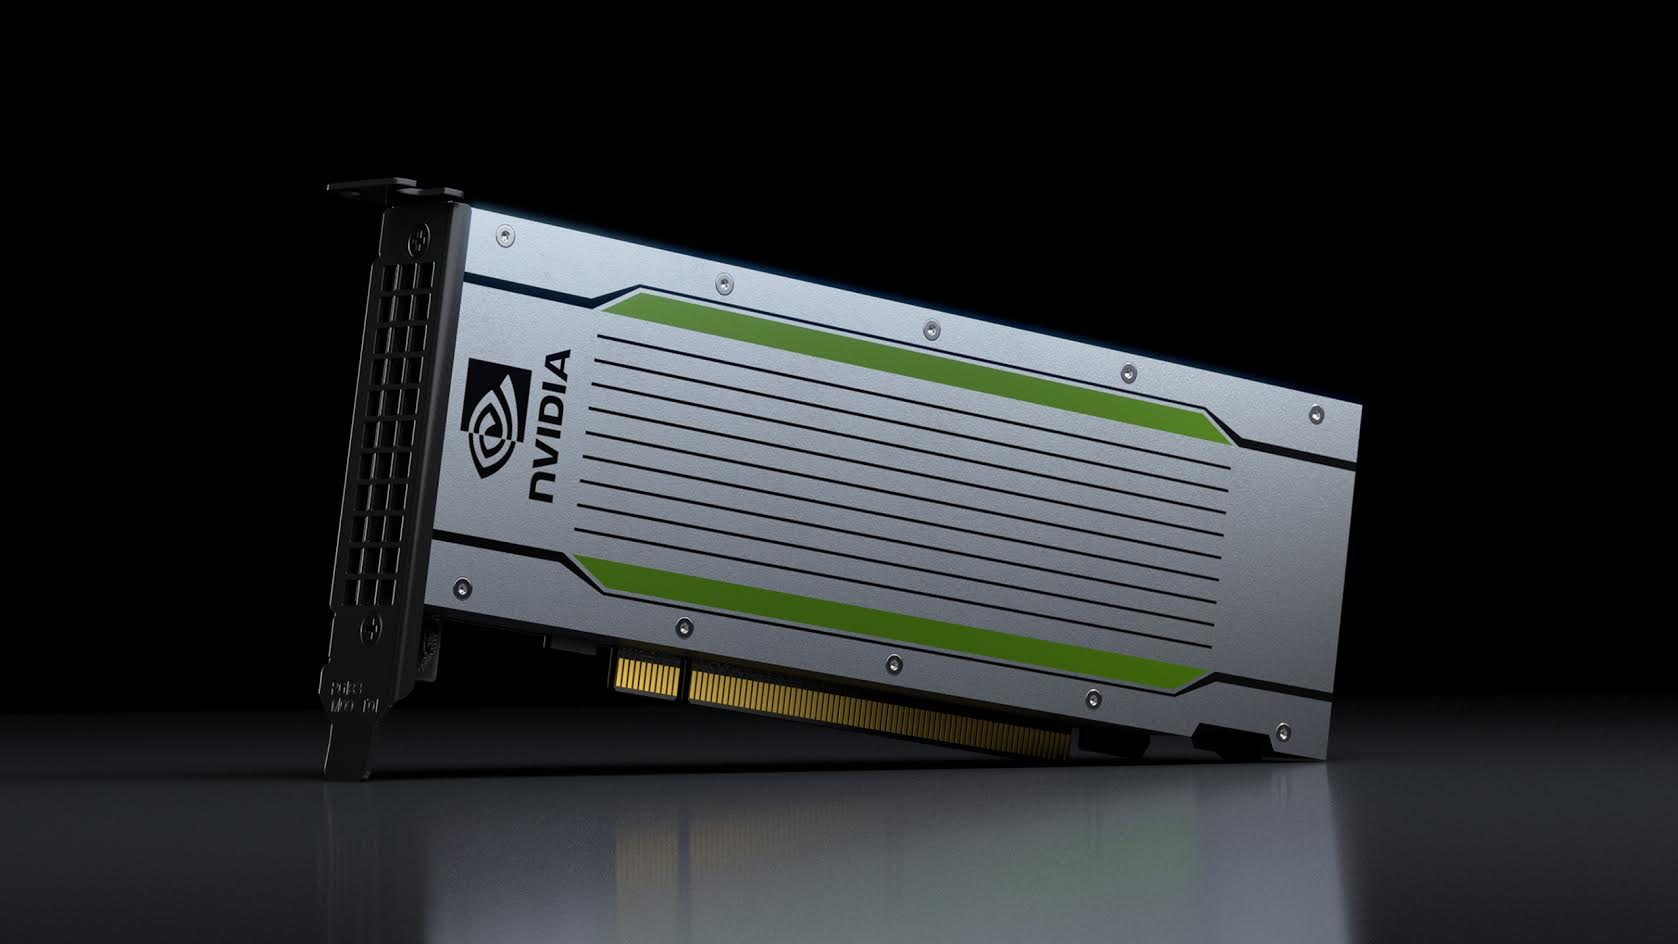 , Nvidia, Graphics processing unit, Turing, GeForce, Nvidia Tesla, Graphics Cards & Video Adapters, Tesla, Nvidia RTX, Nvidia Quadro, nvidia geforce, technology, product, electronics, multimedia, font, brand, Nvidia